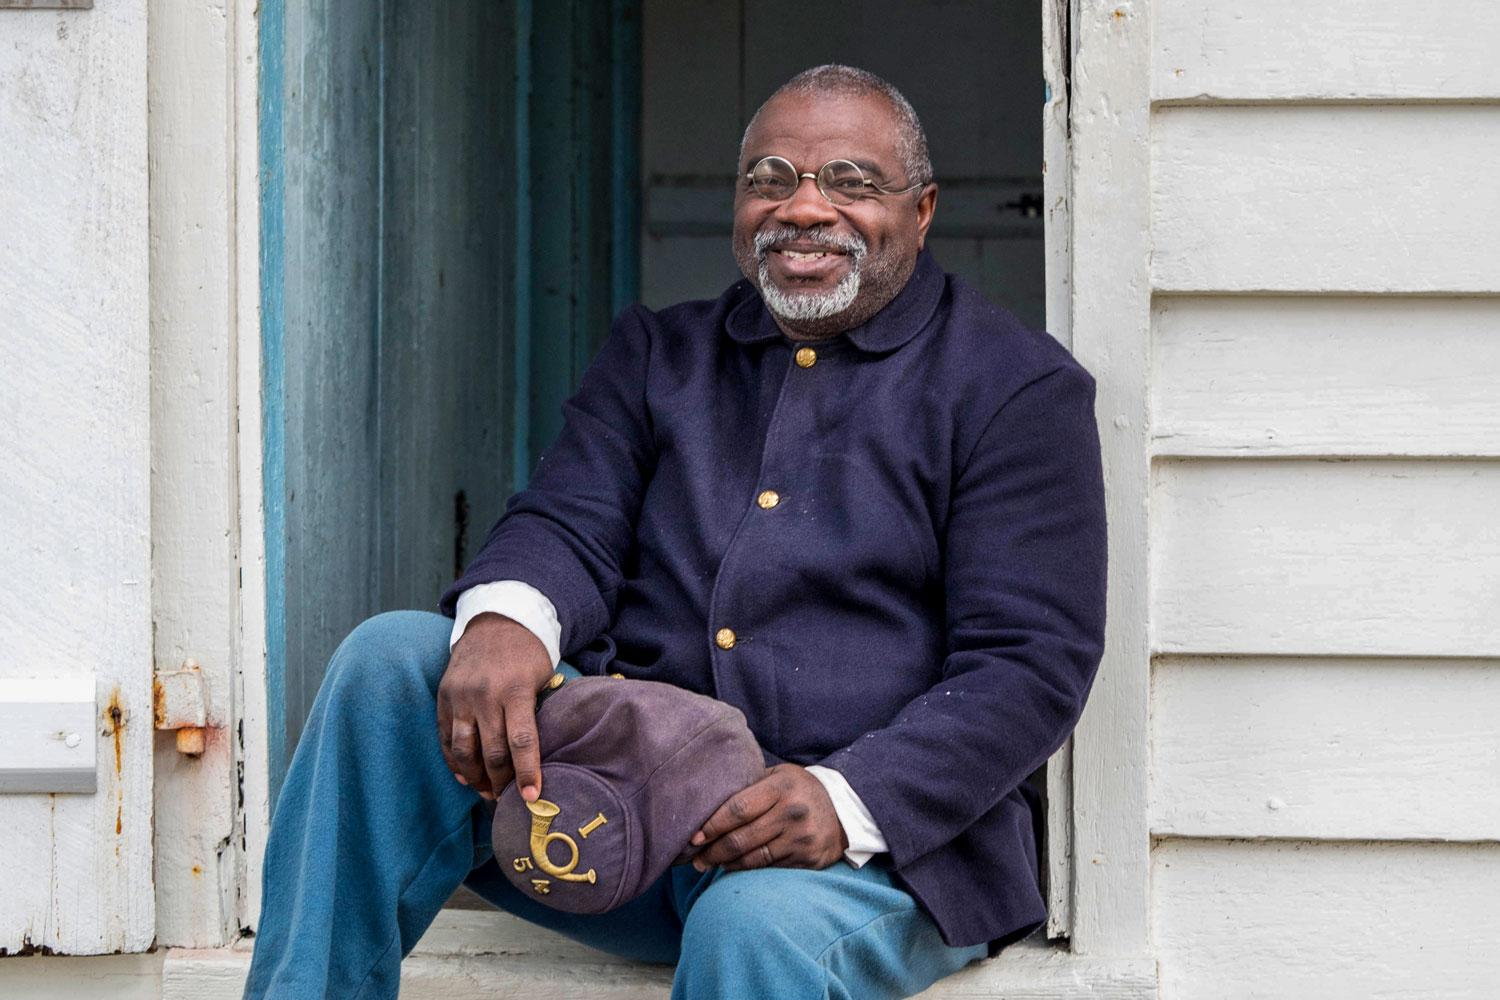 Joe McGill founded the Slave Dwelling Project to serve as a clearinghouse for the identification of extant slave dwellings across the country and resources to document and preserve them.